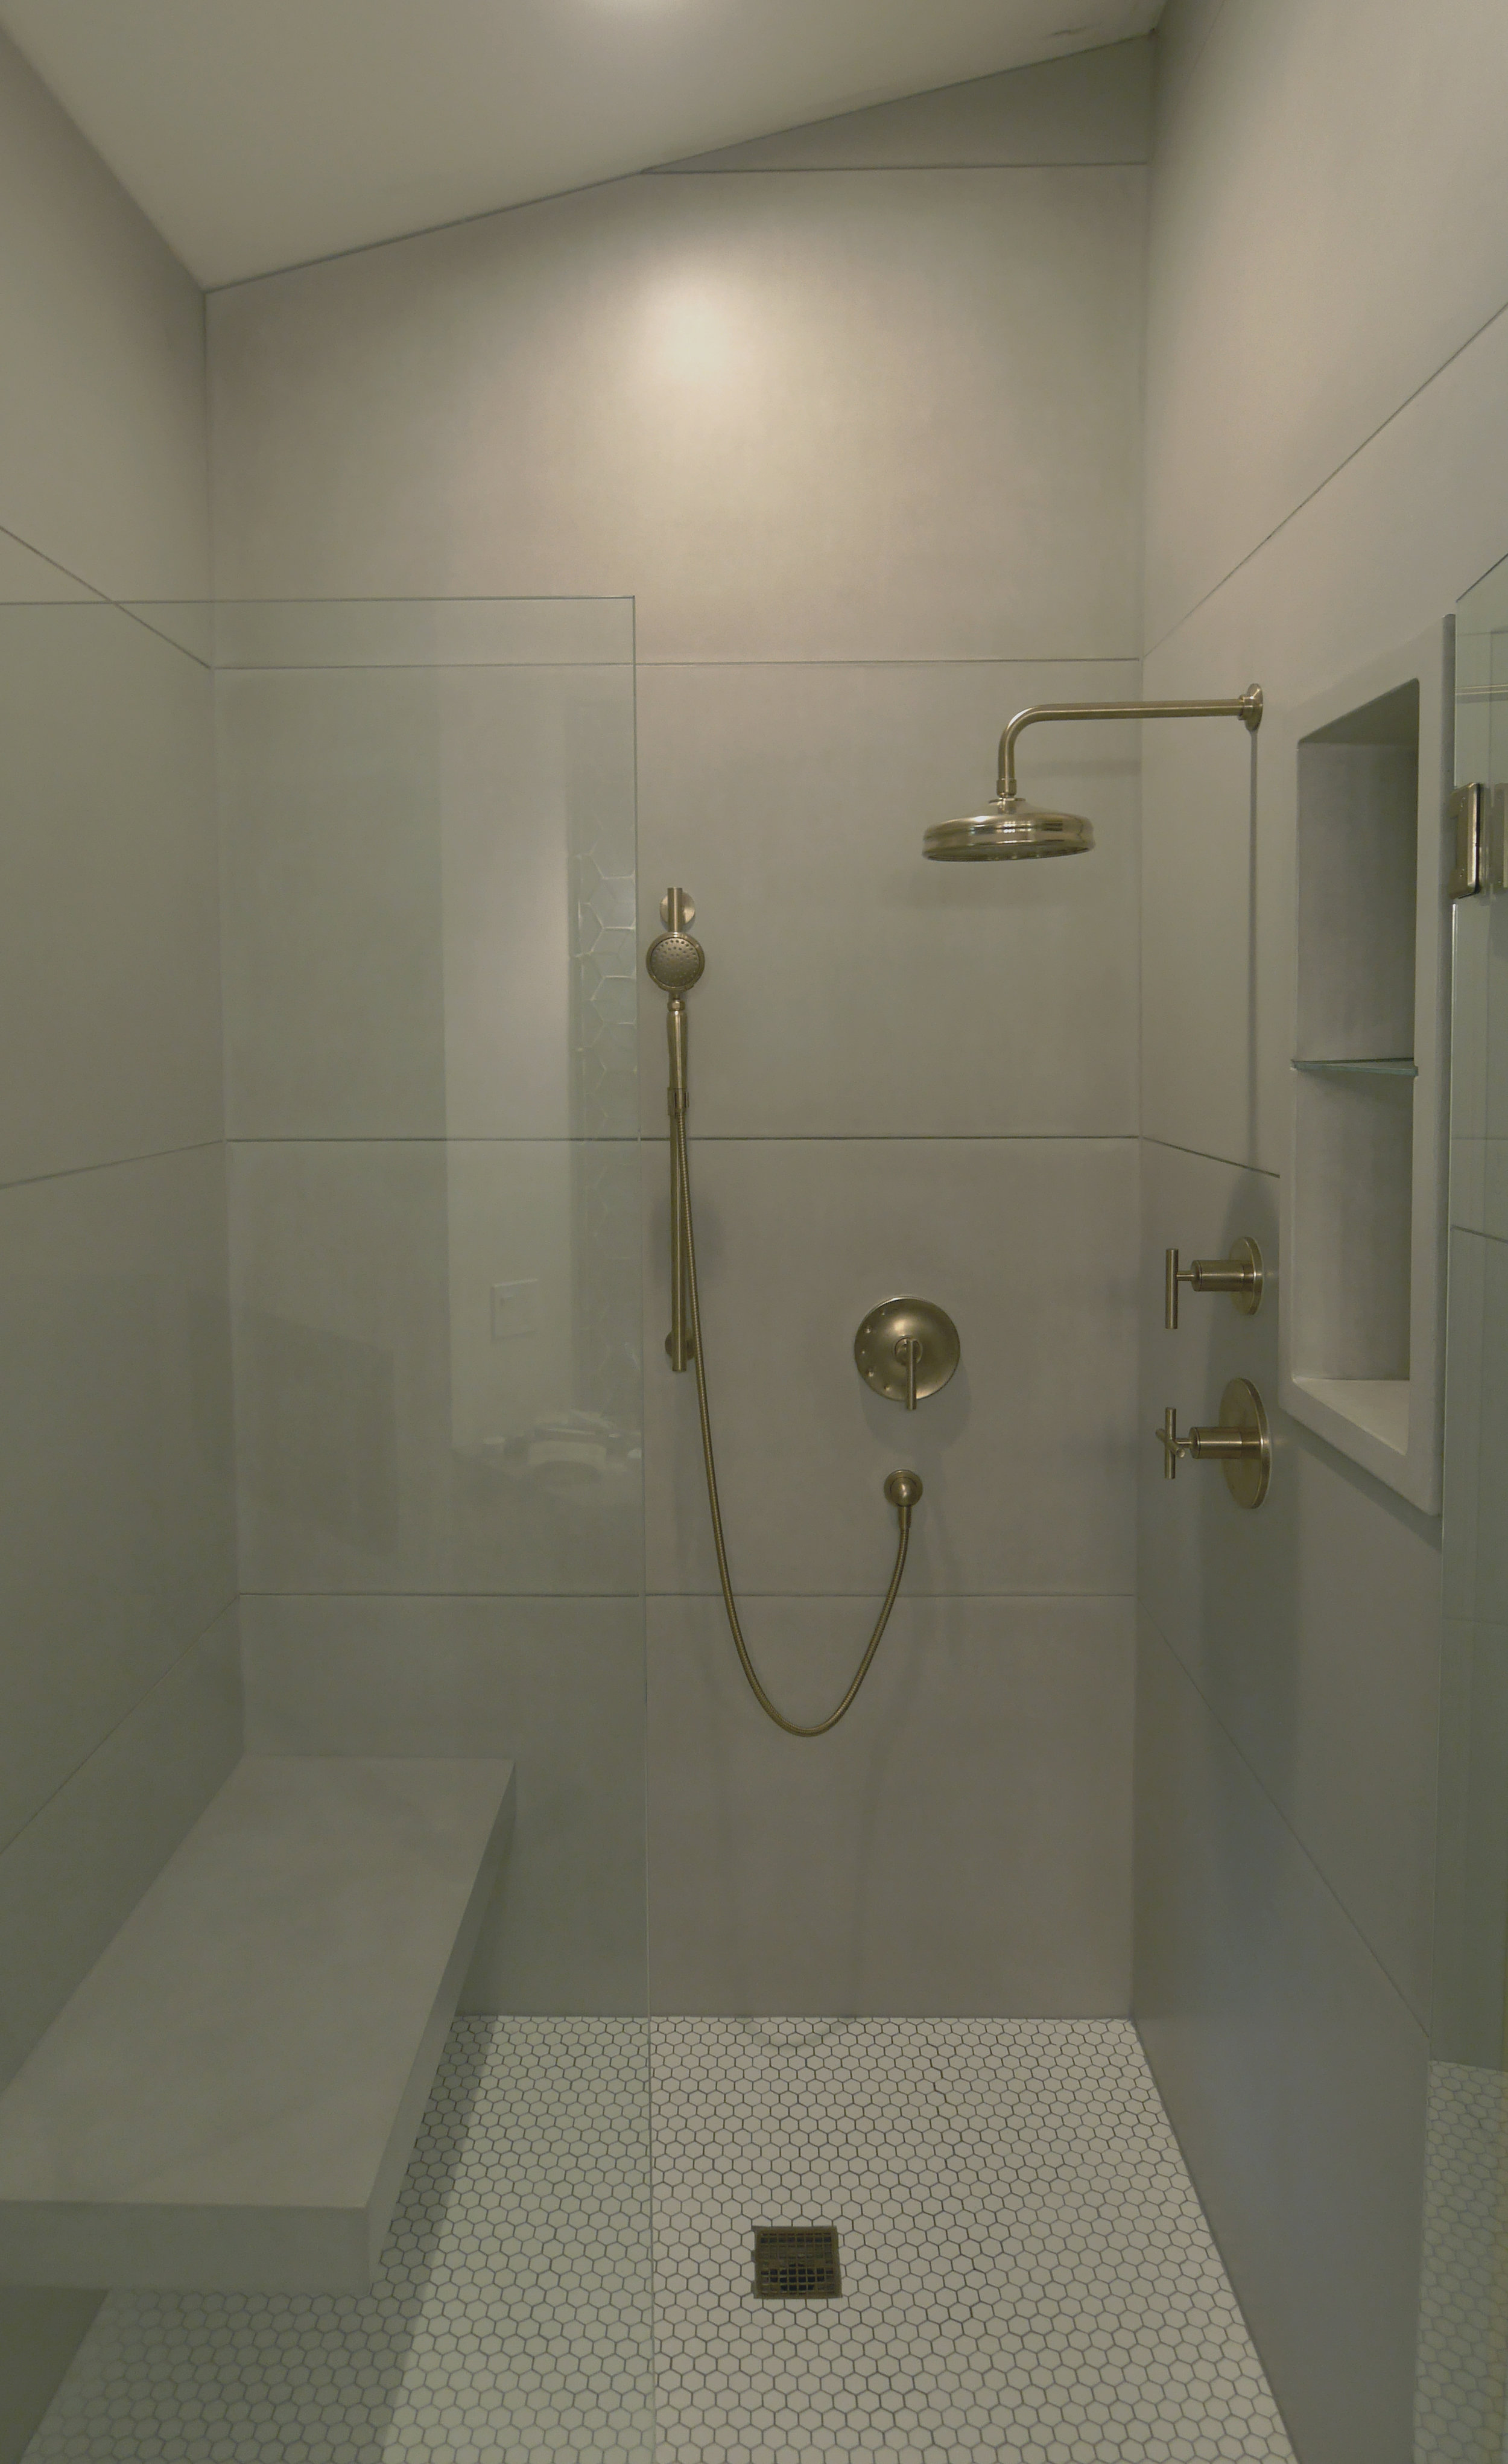 Large Format Concrete Tile Shower with Floating Bench - Copy (1).jpg